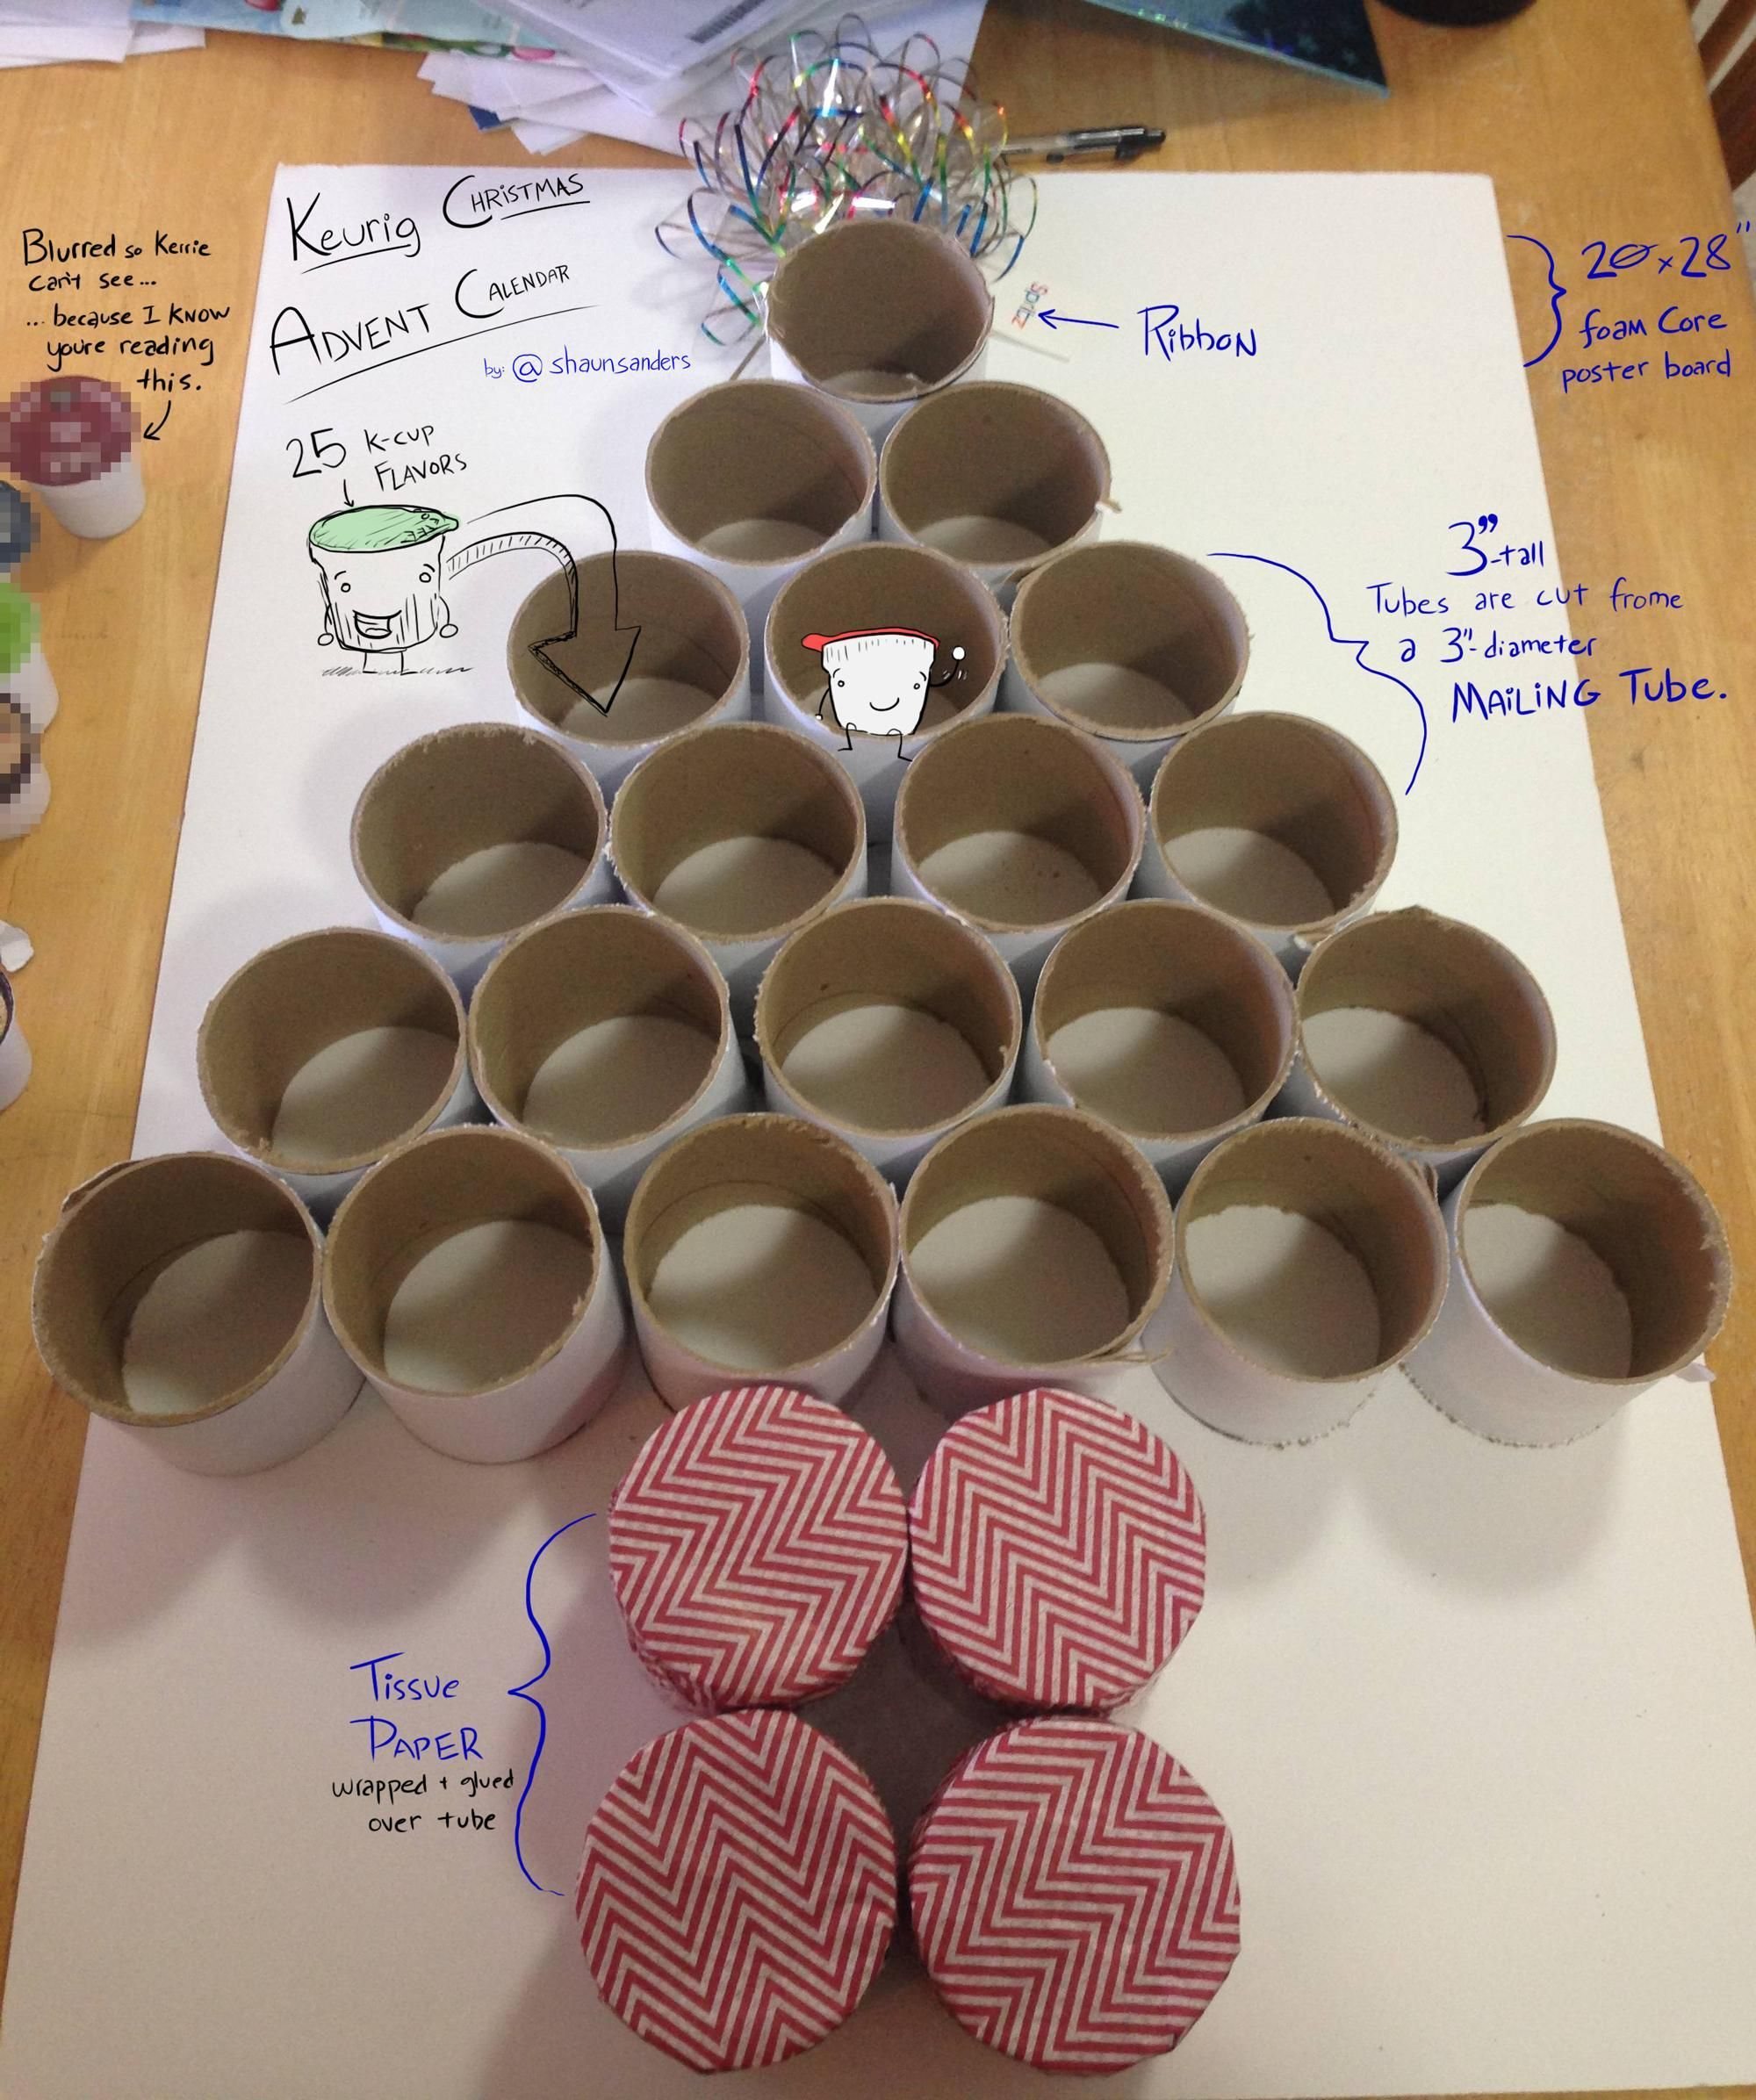 Make Your Own Calendar Art And Craft : Make your own keurig k cup pack advent calendar courtesy